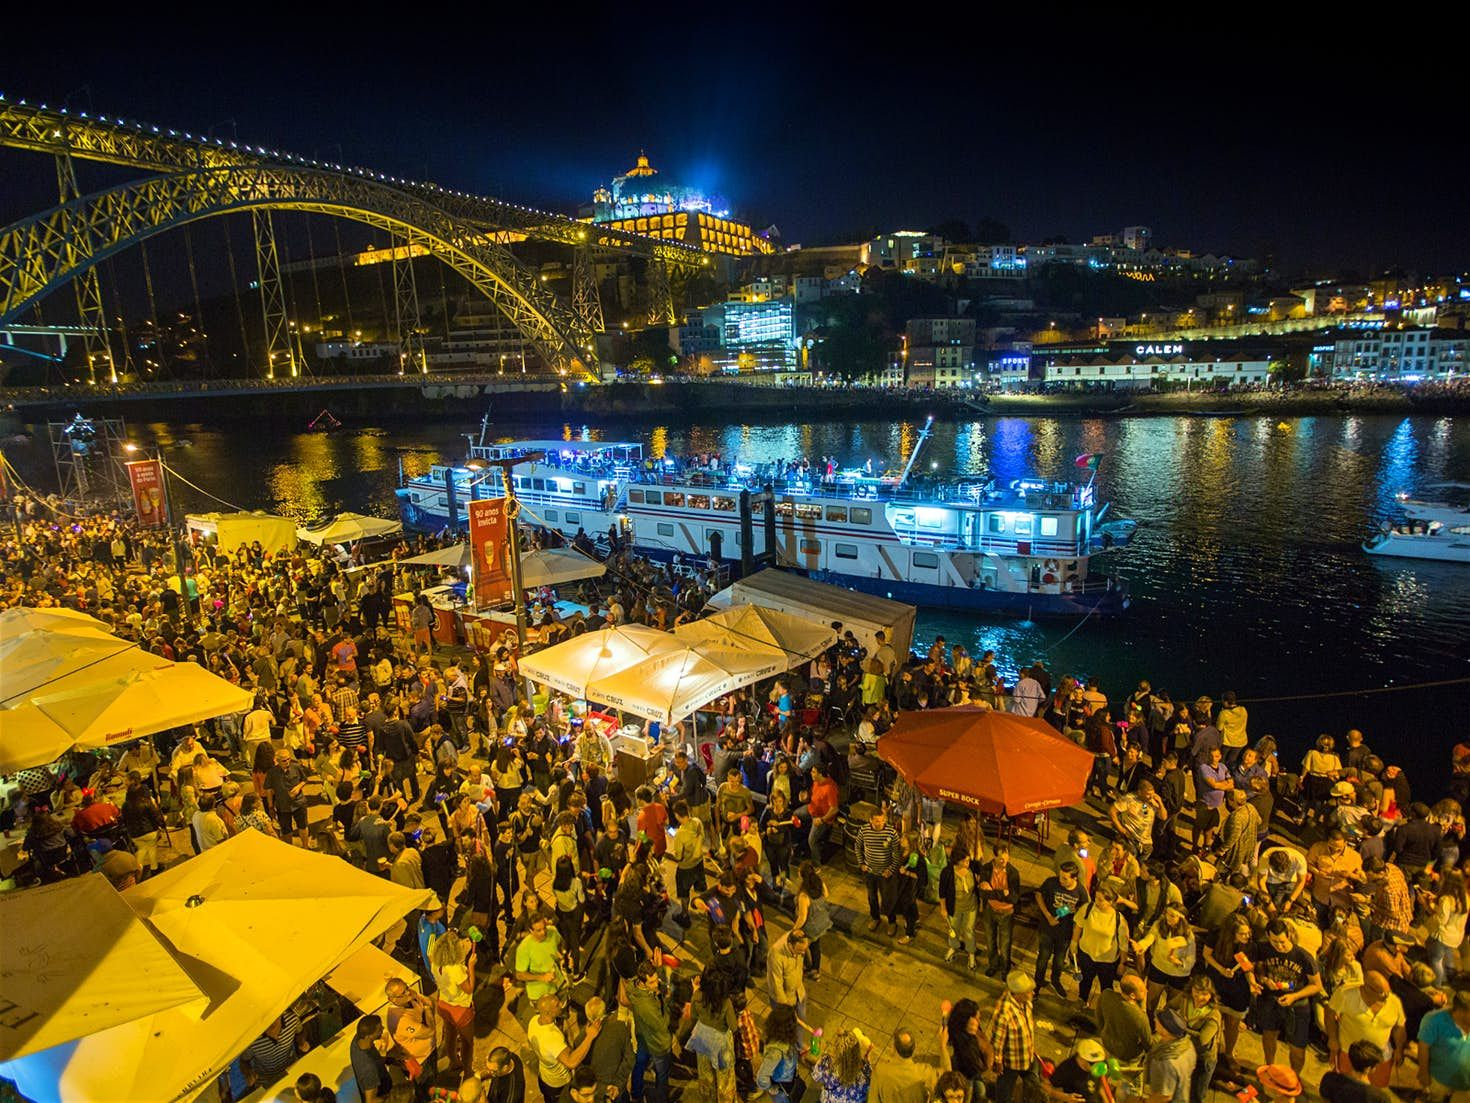 Come Peak Festival Season May To September The Party Scene Has Become Saturated With Slightly Sunburned Fl Best Places To Travel Vacation Life Travel Party